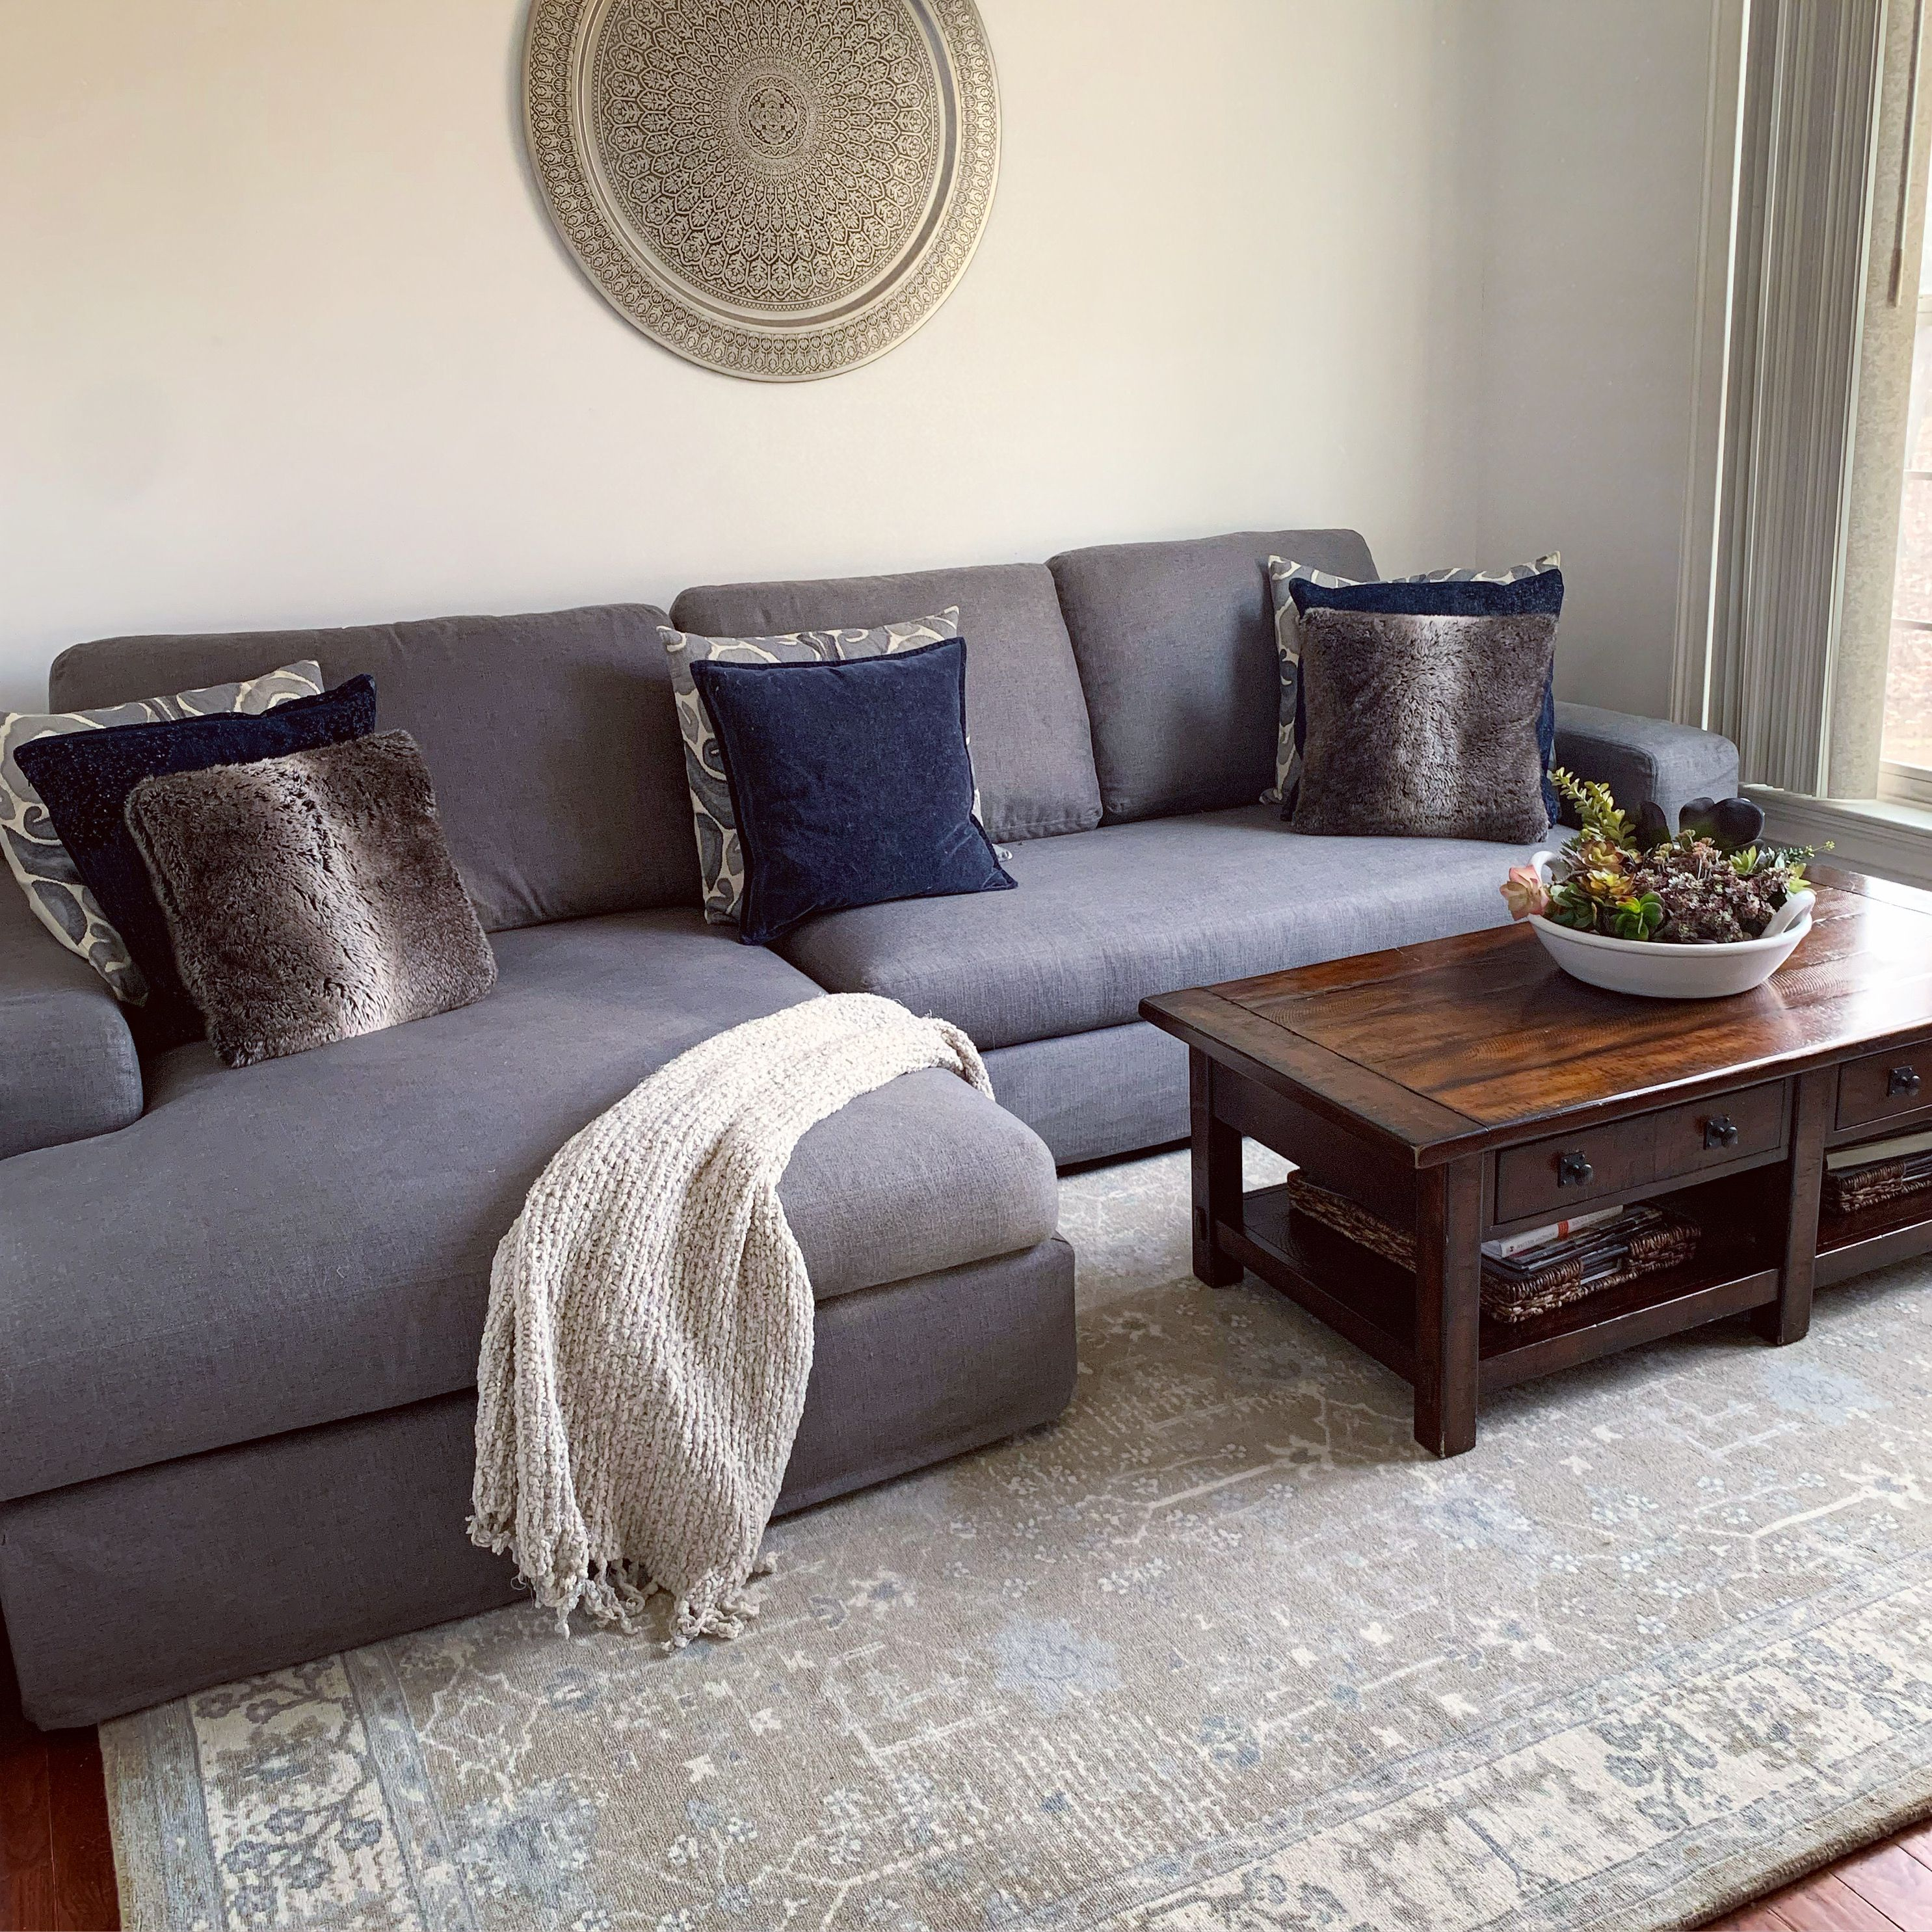 Pottery Barn Living Room Pottery Barn Living Room Pottery Barn Living Room Ideas Rustic Pottery Barn Living Room Sofa